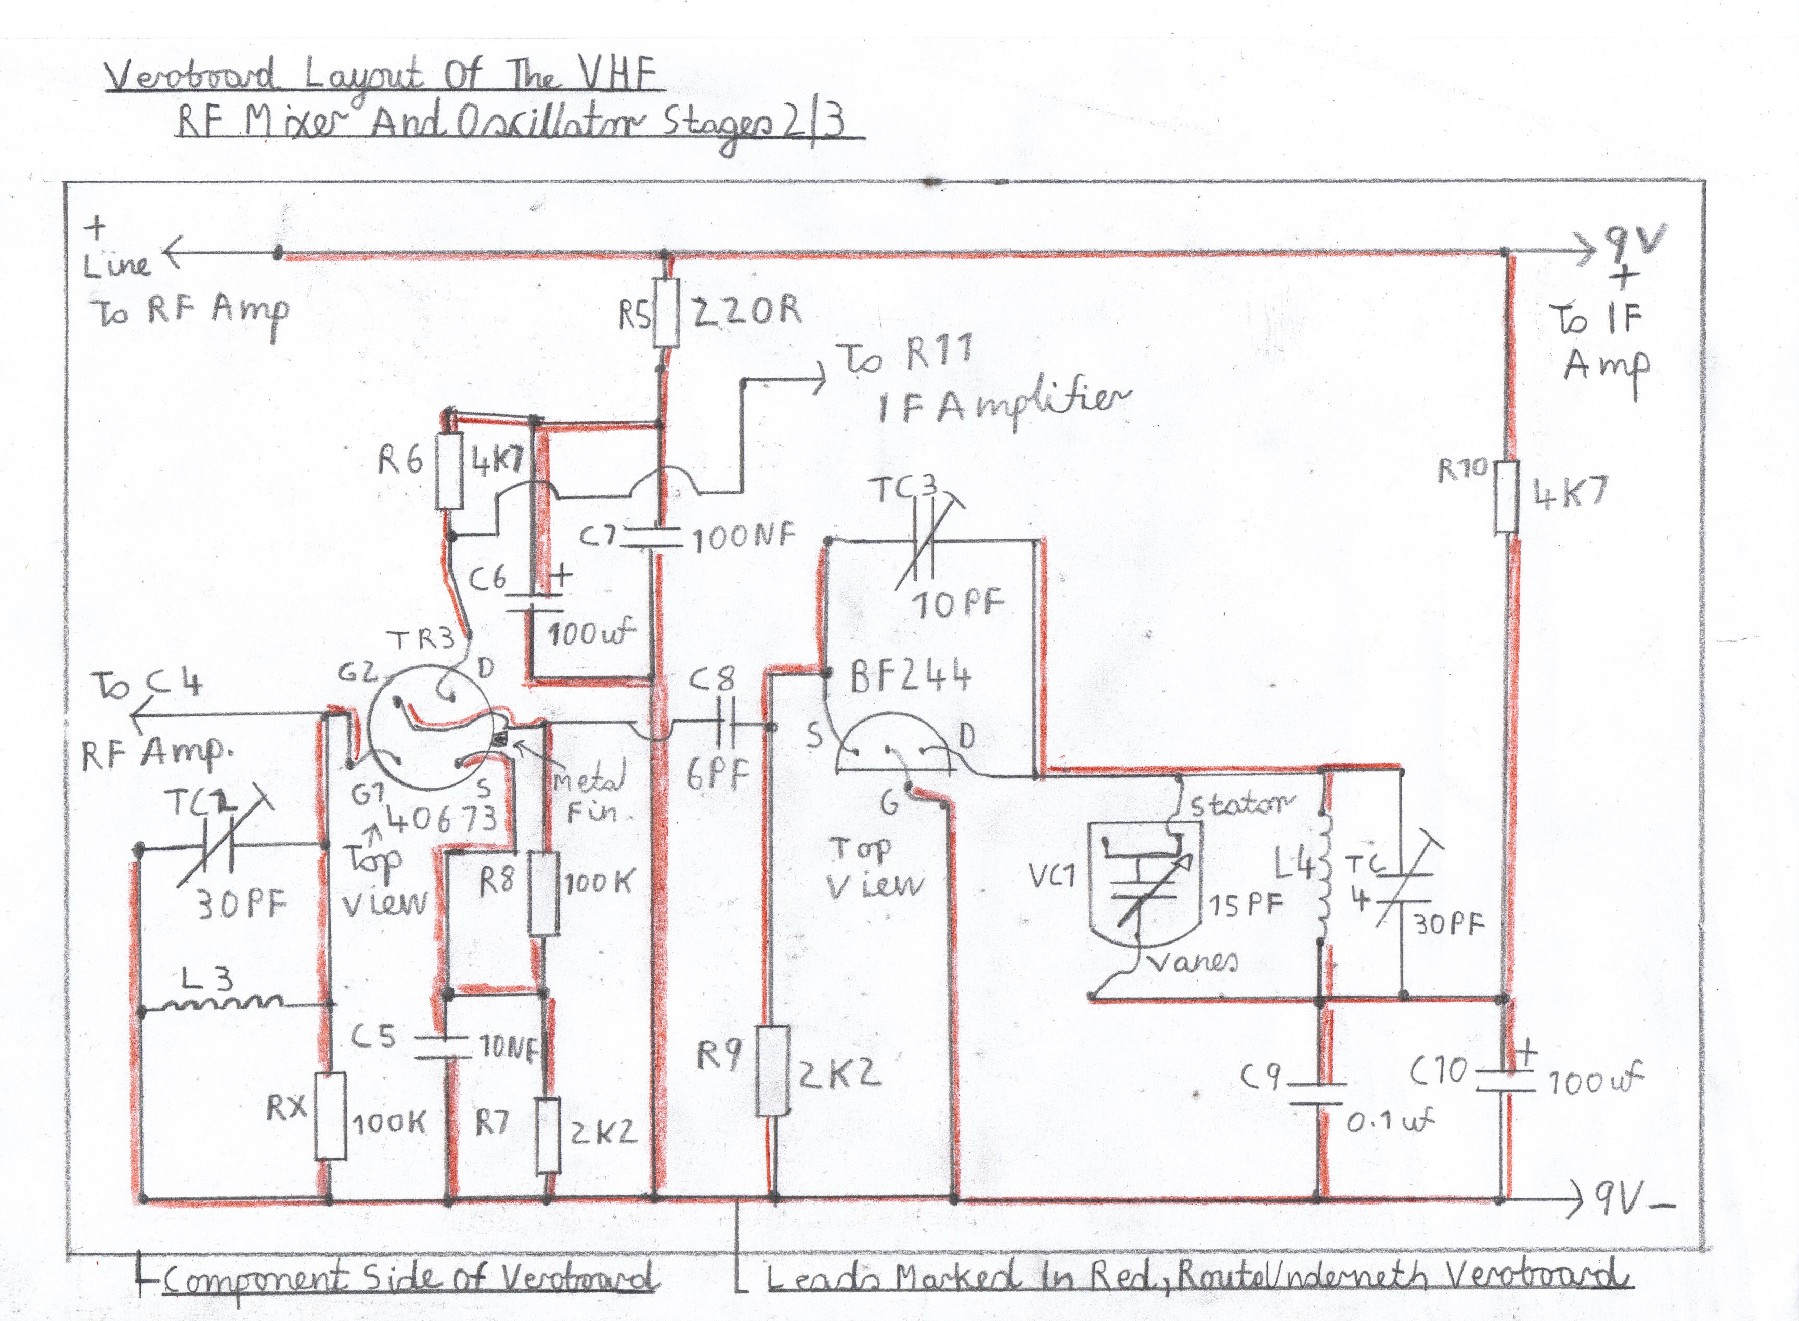 Transistor Fm Superhet Receiver 1967 F100 Heater Wiring Diagram Of The Vhf Mixer And Oscillator This Stage Is Wired Tested After If Amplifier Known To Work Ok